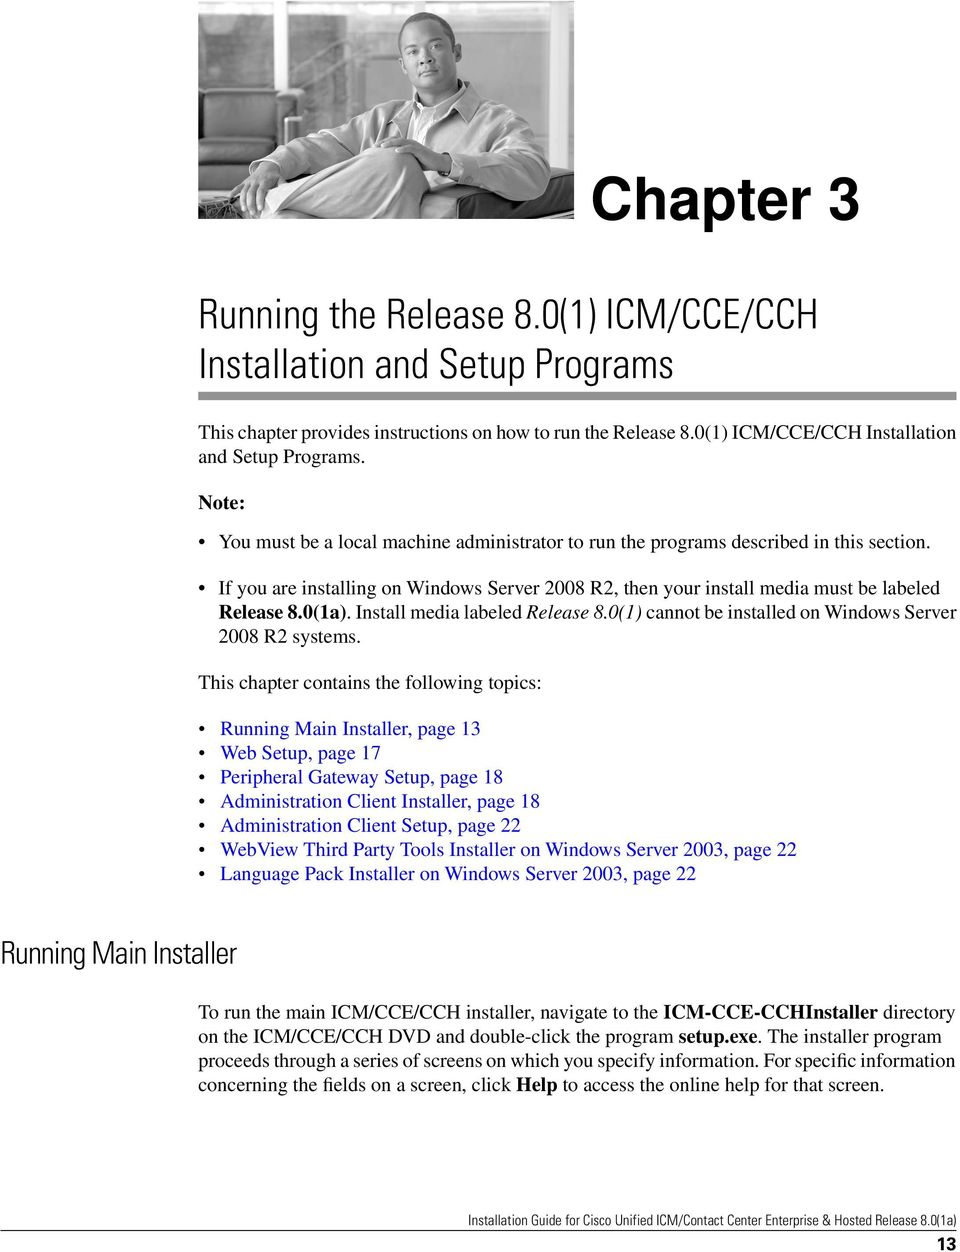 This chapter contains the following topics: Chapter 3 Running Main Installer, page 13 Web Setup, page 17 Peripheral Gateway Setup, page 18 Administration Client Installer, page 18 Administration